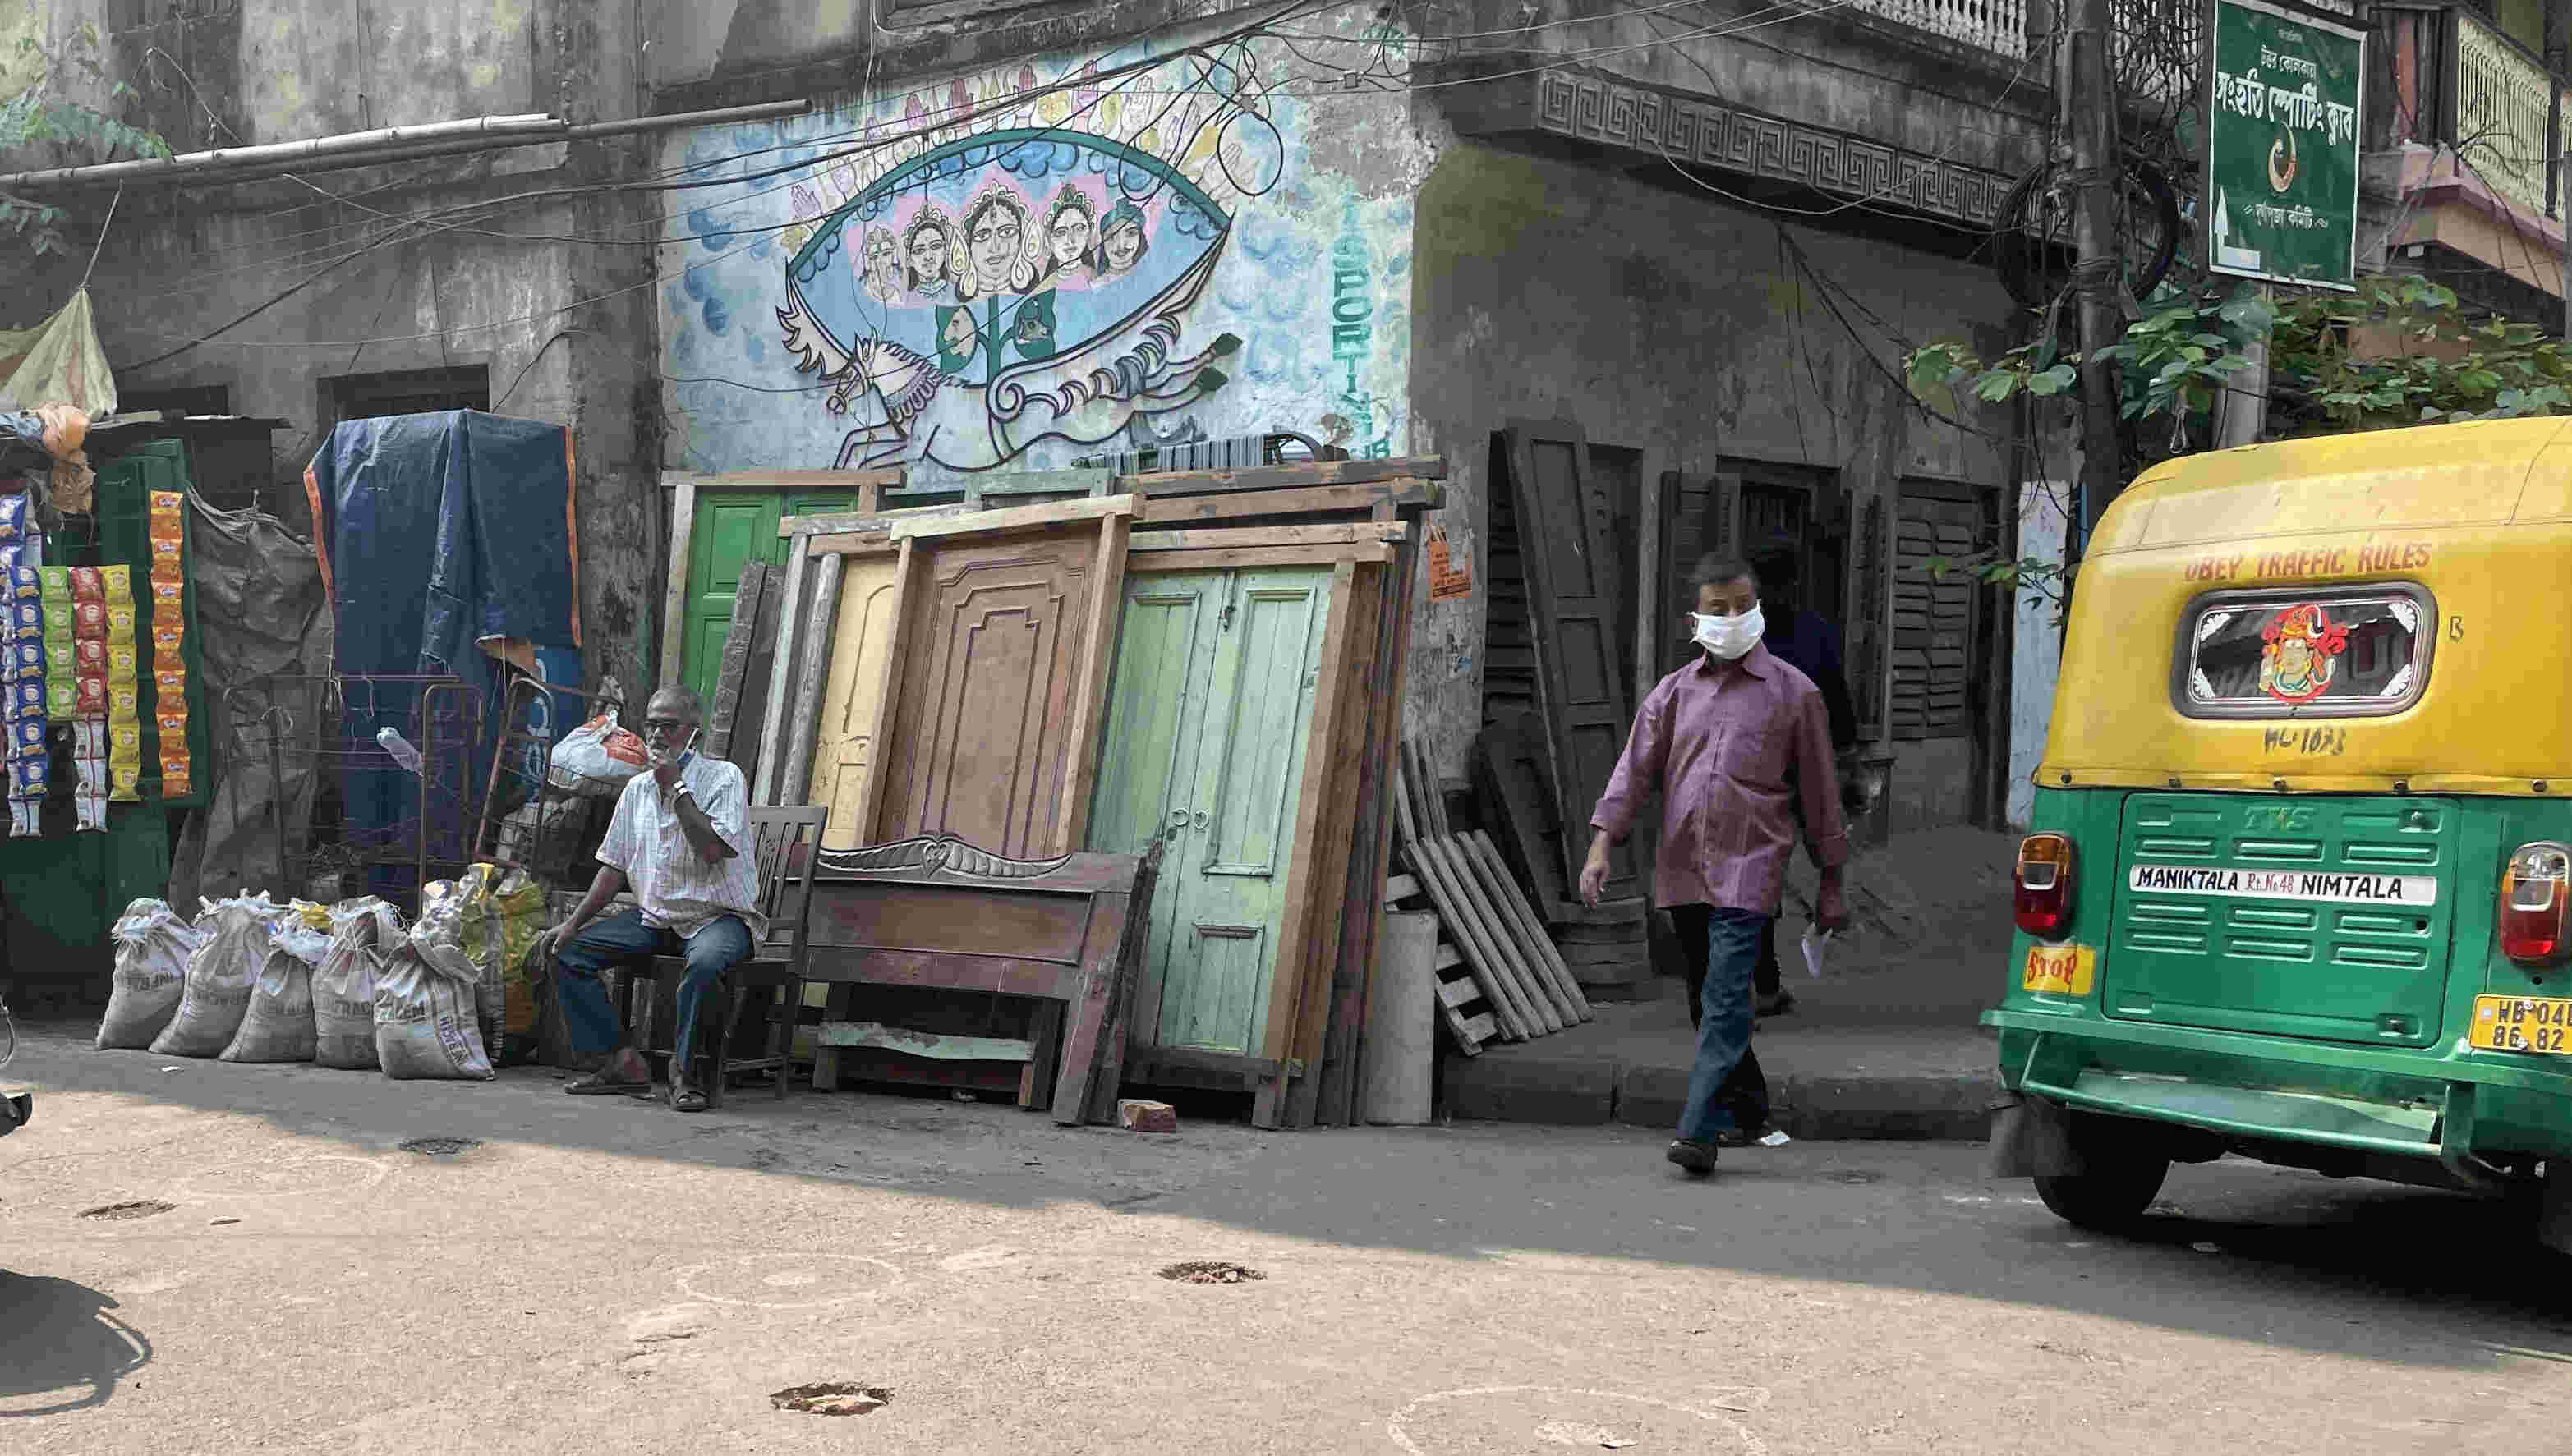 Calcutta is a city where change is constant. A glimpse of old door frames being sold.